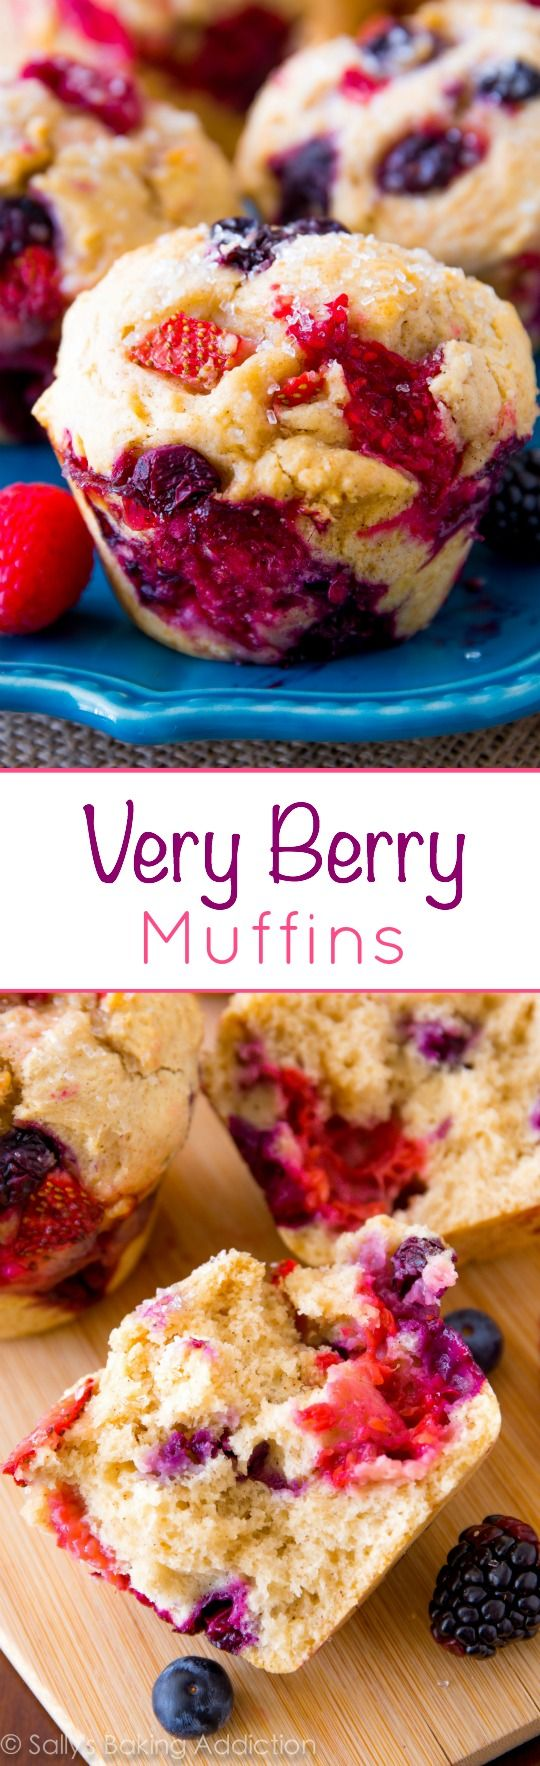 Very Berry Muffins that are bursting with juicy berries-- berries in every bite!